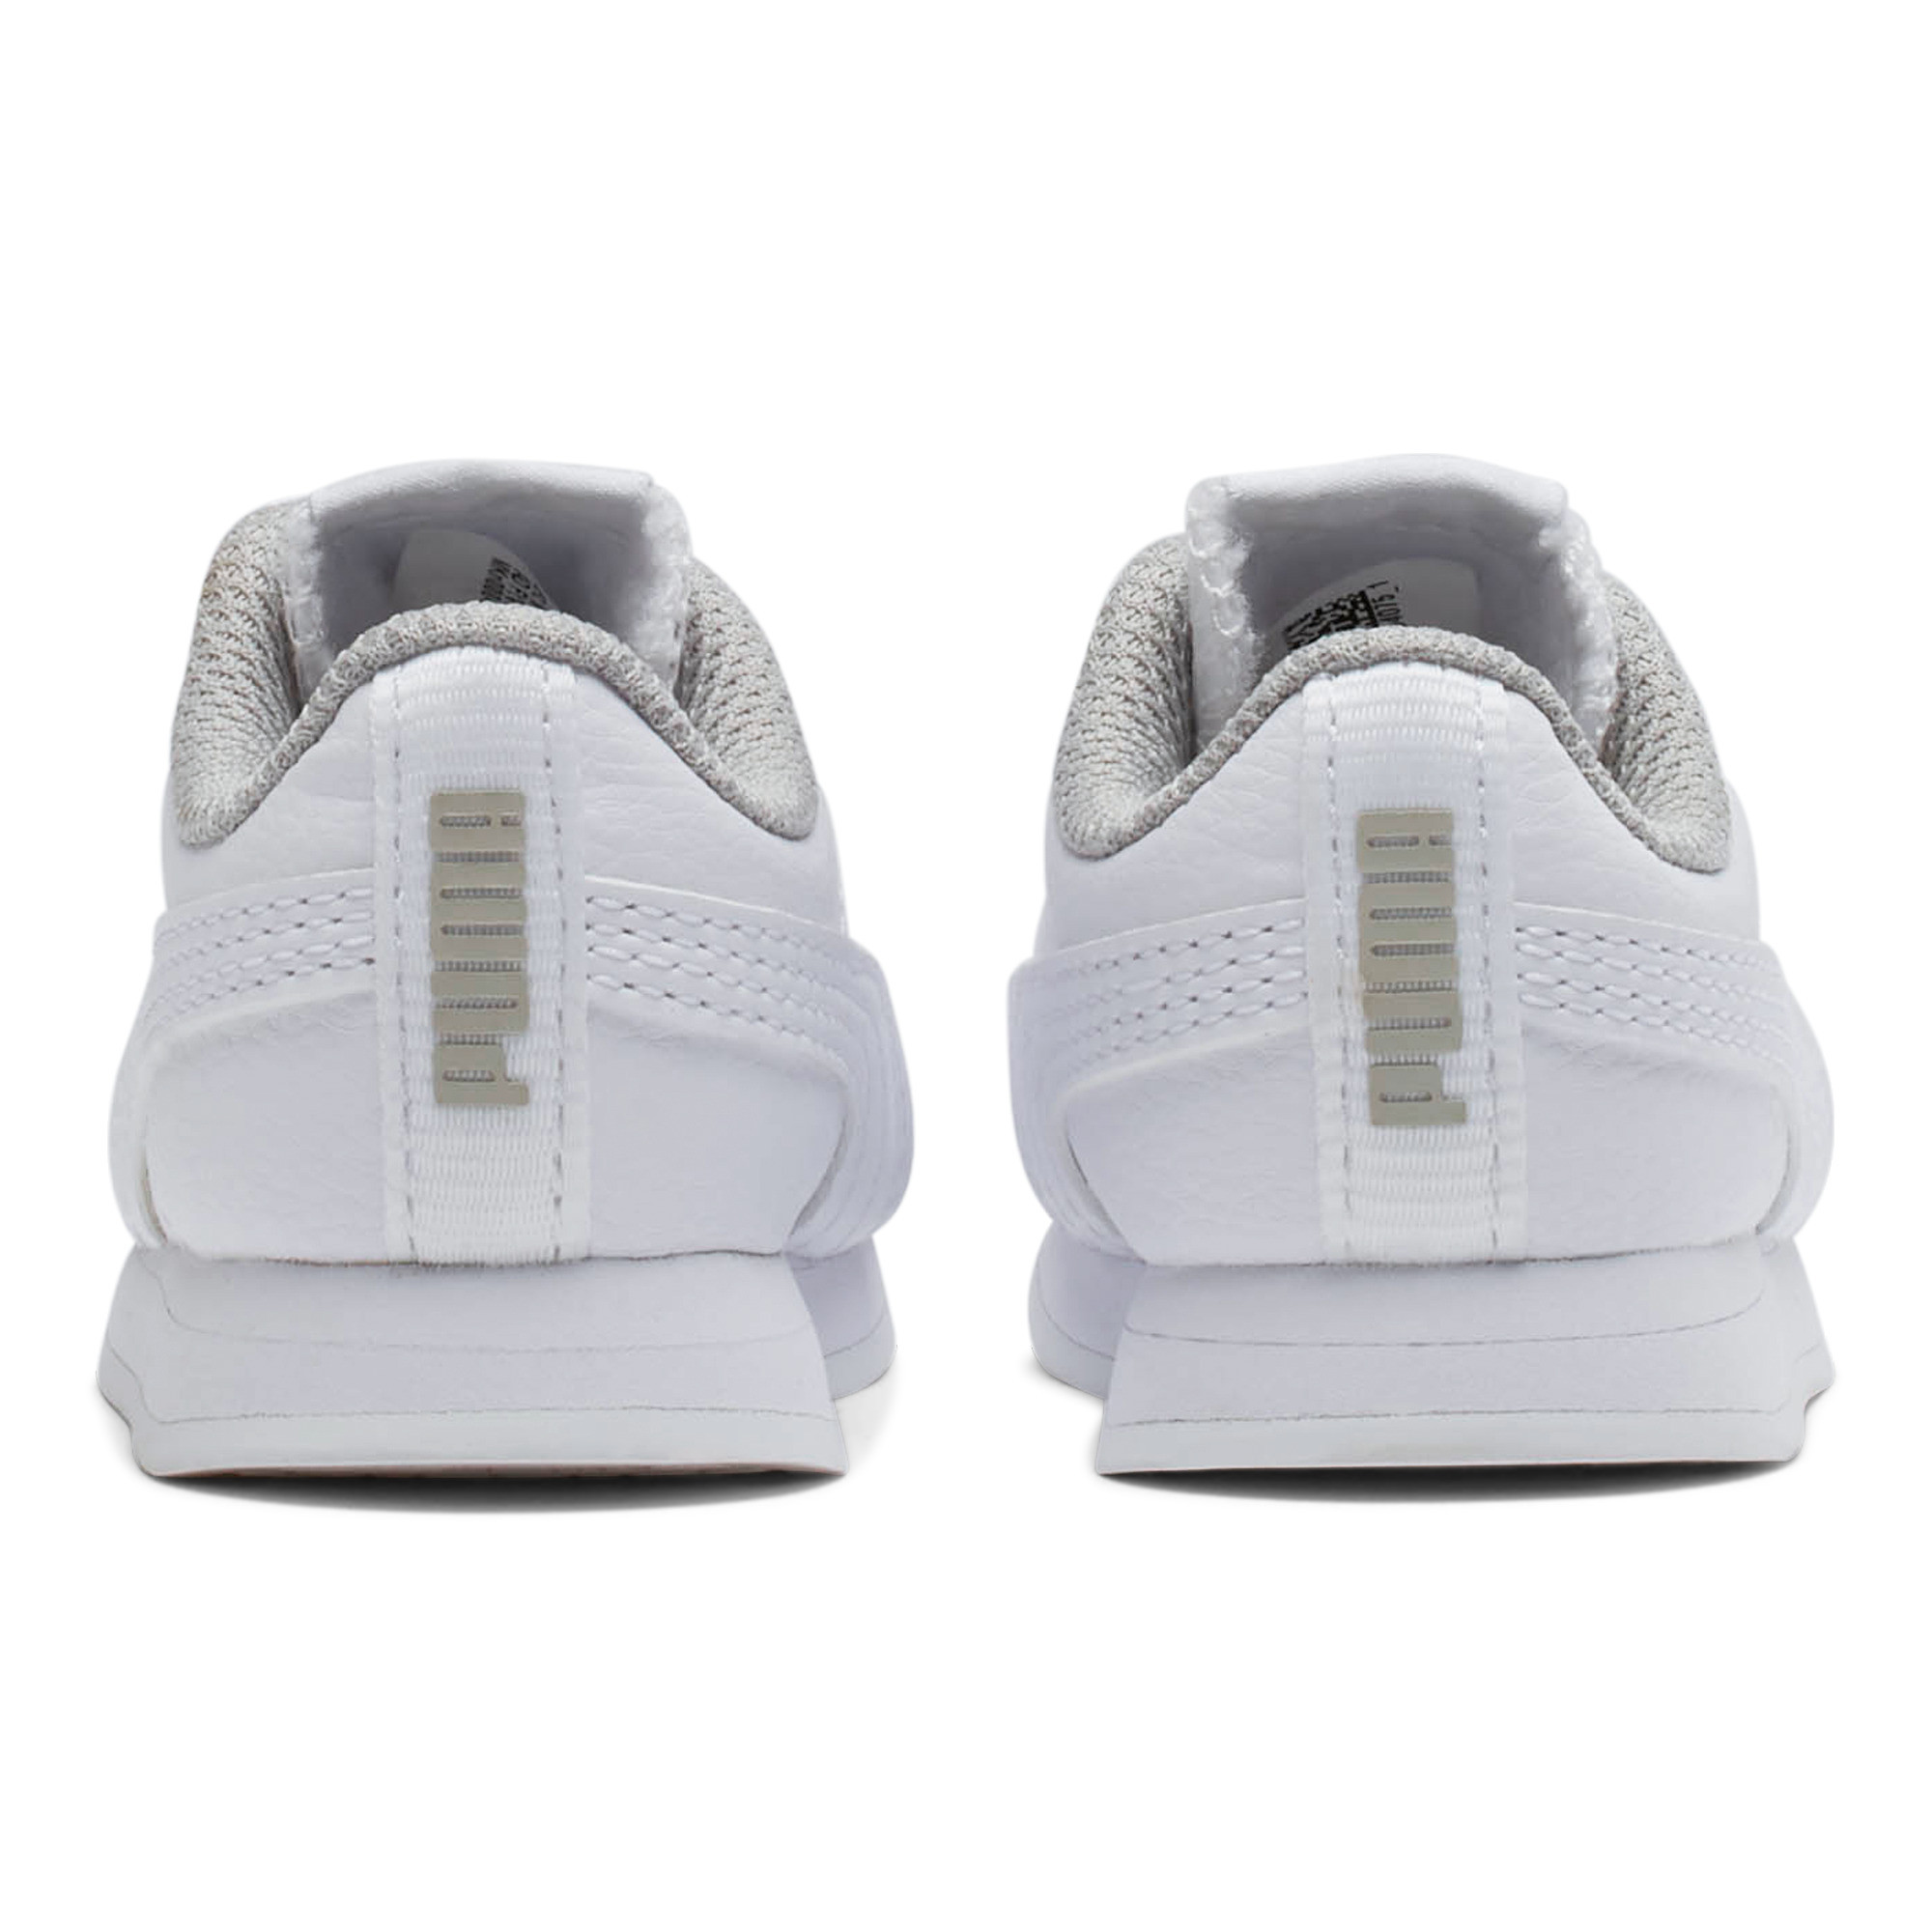 PUMA-Turin-II-AC-Toddler-Shoes-Kids-Shoe-Kids thumbnail 3